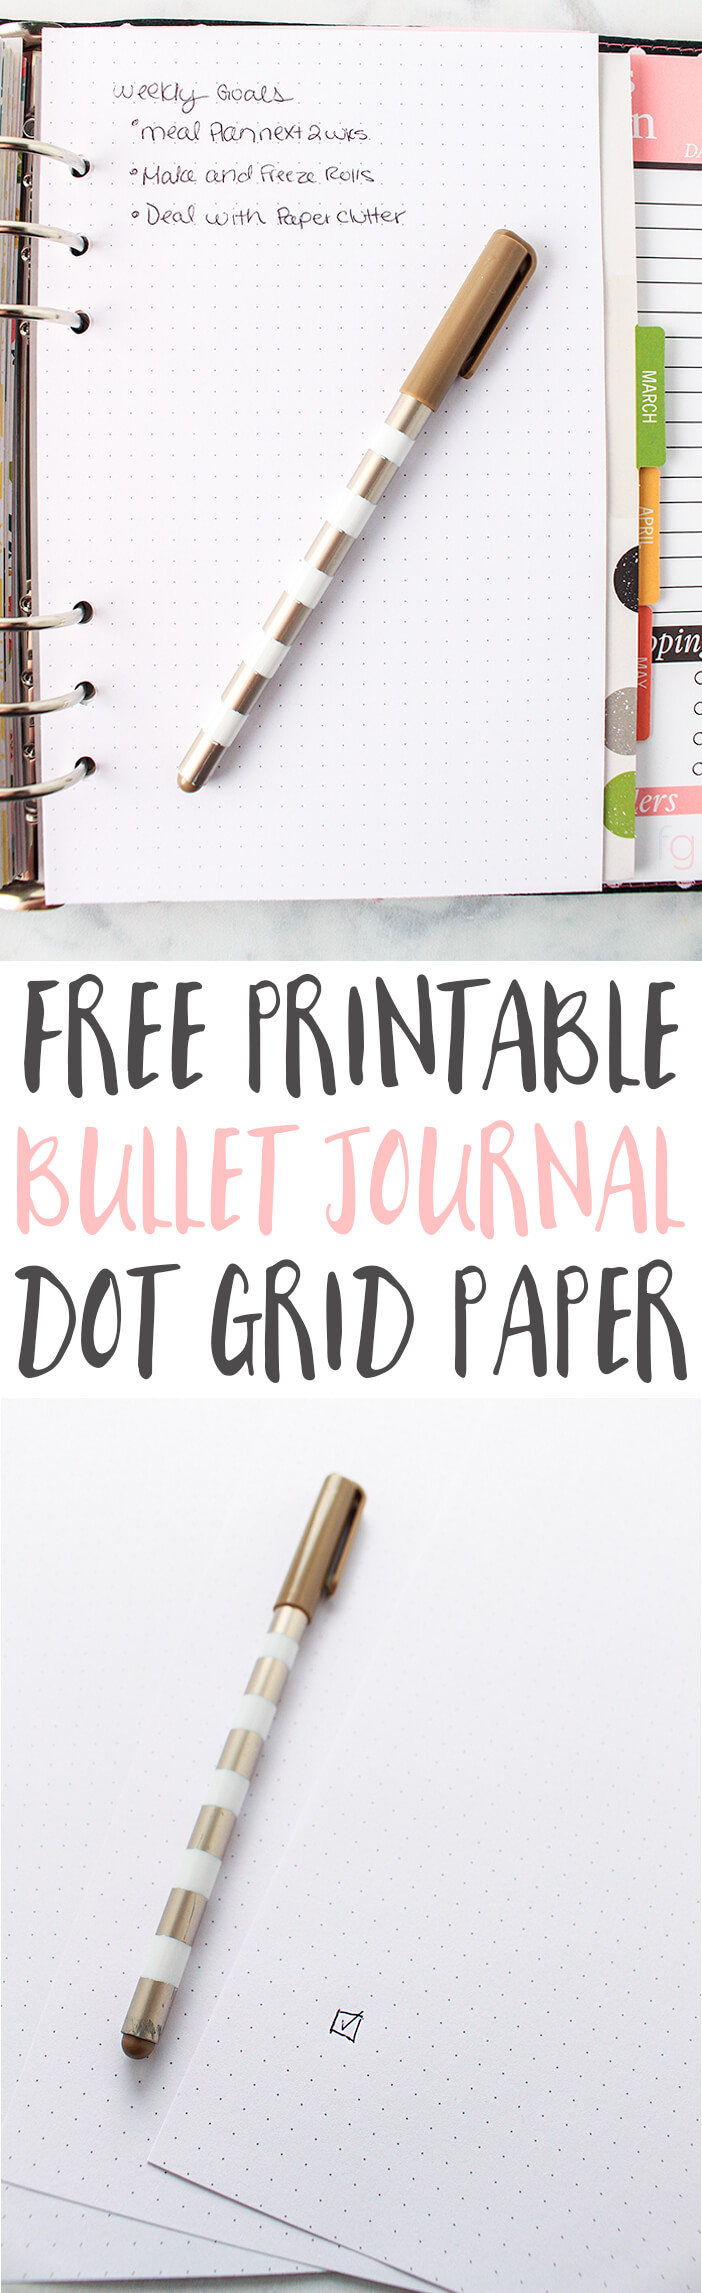 photo regarding Printable Journal Paper identified as Dot Grid Paper Printable - Totally free Bullet Magazine Site